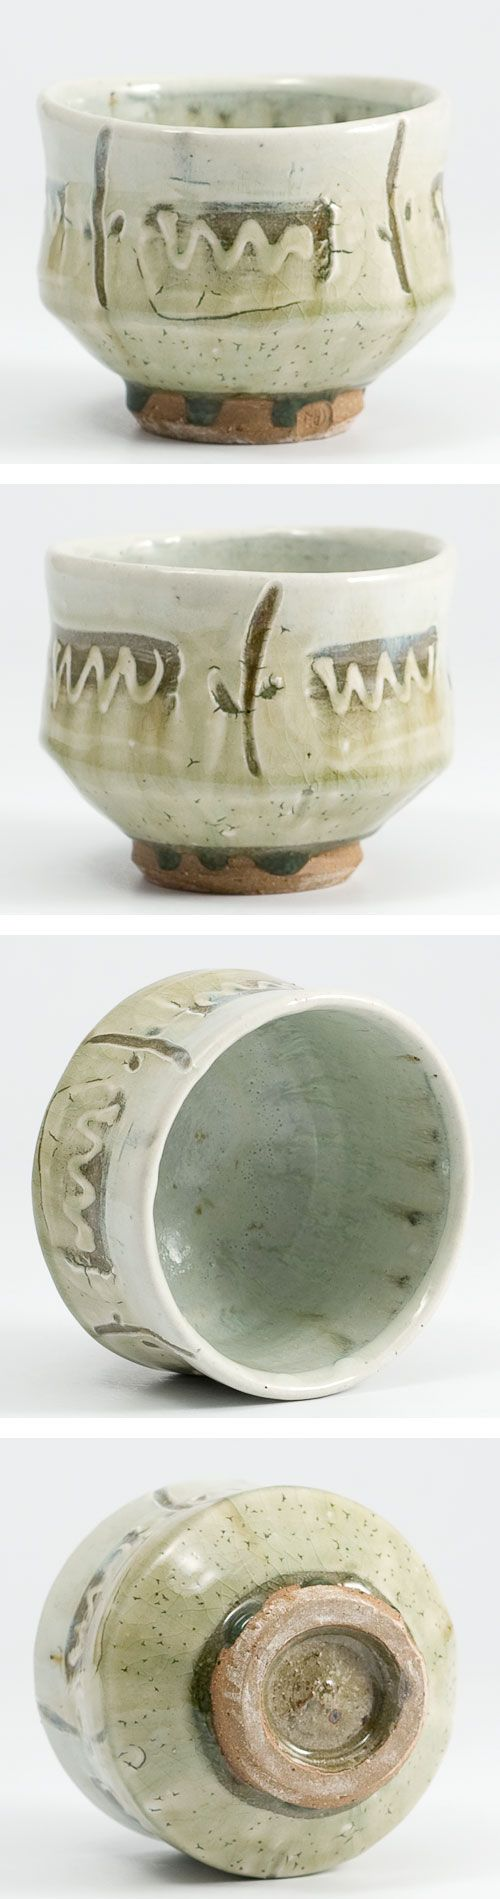 Pin By Laura Davis On Ceramic Inspiration In 2018